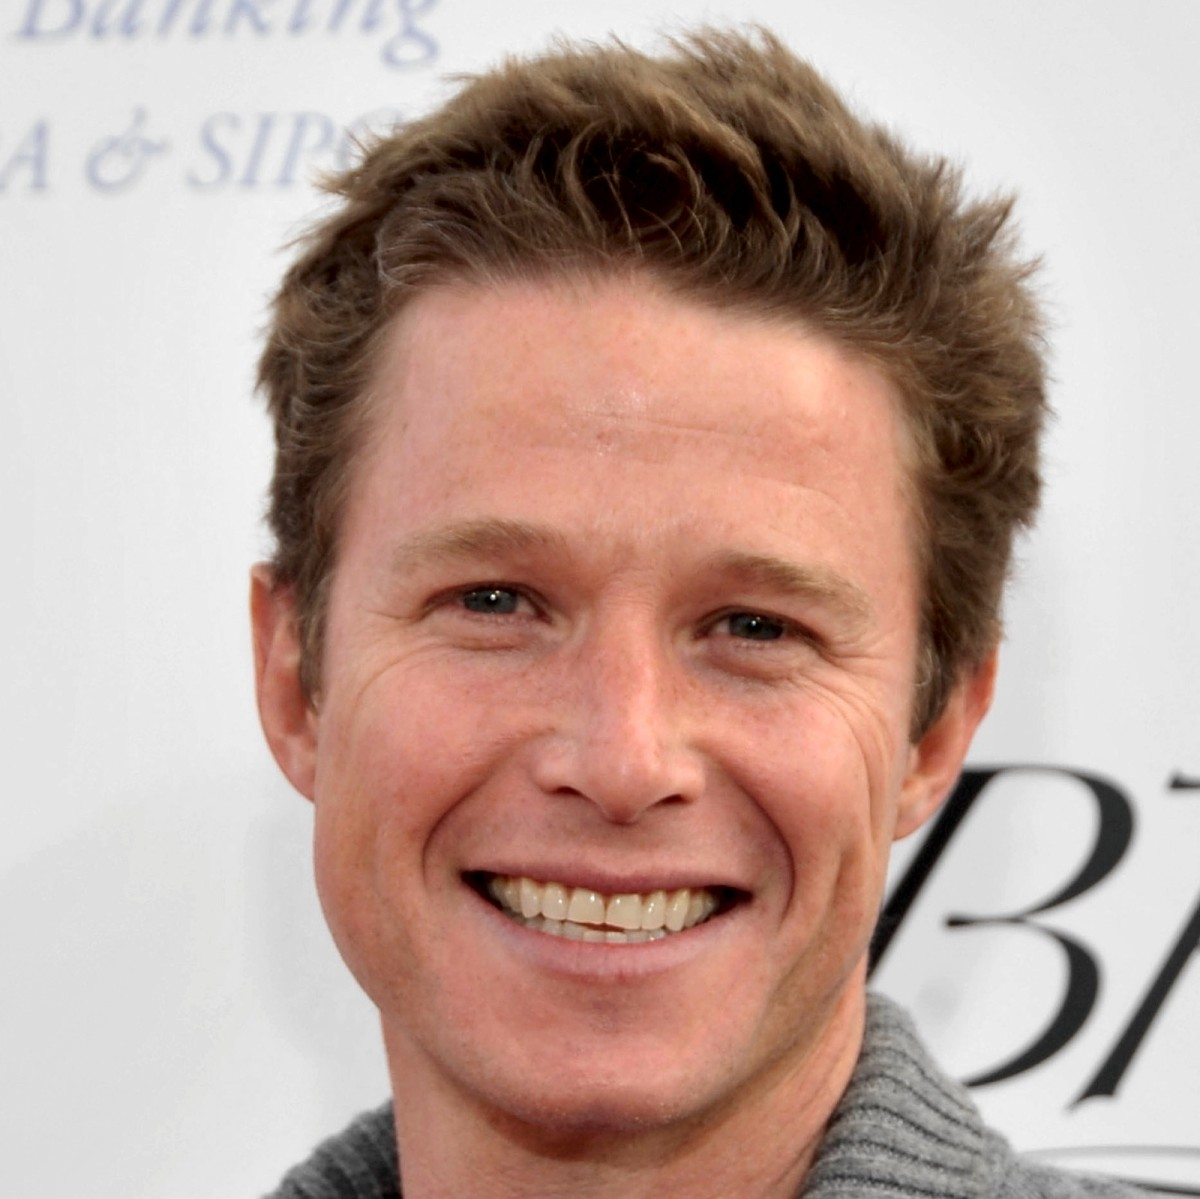 Billy Bush via Getty Images